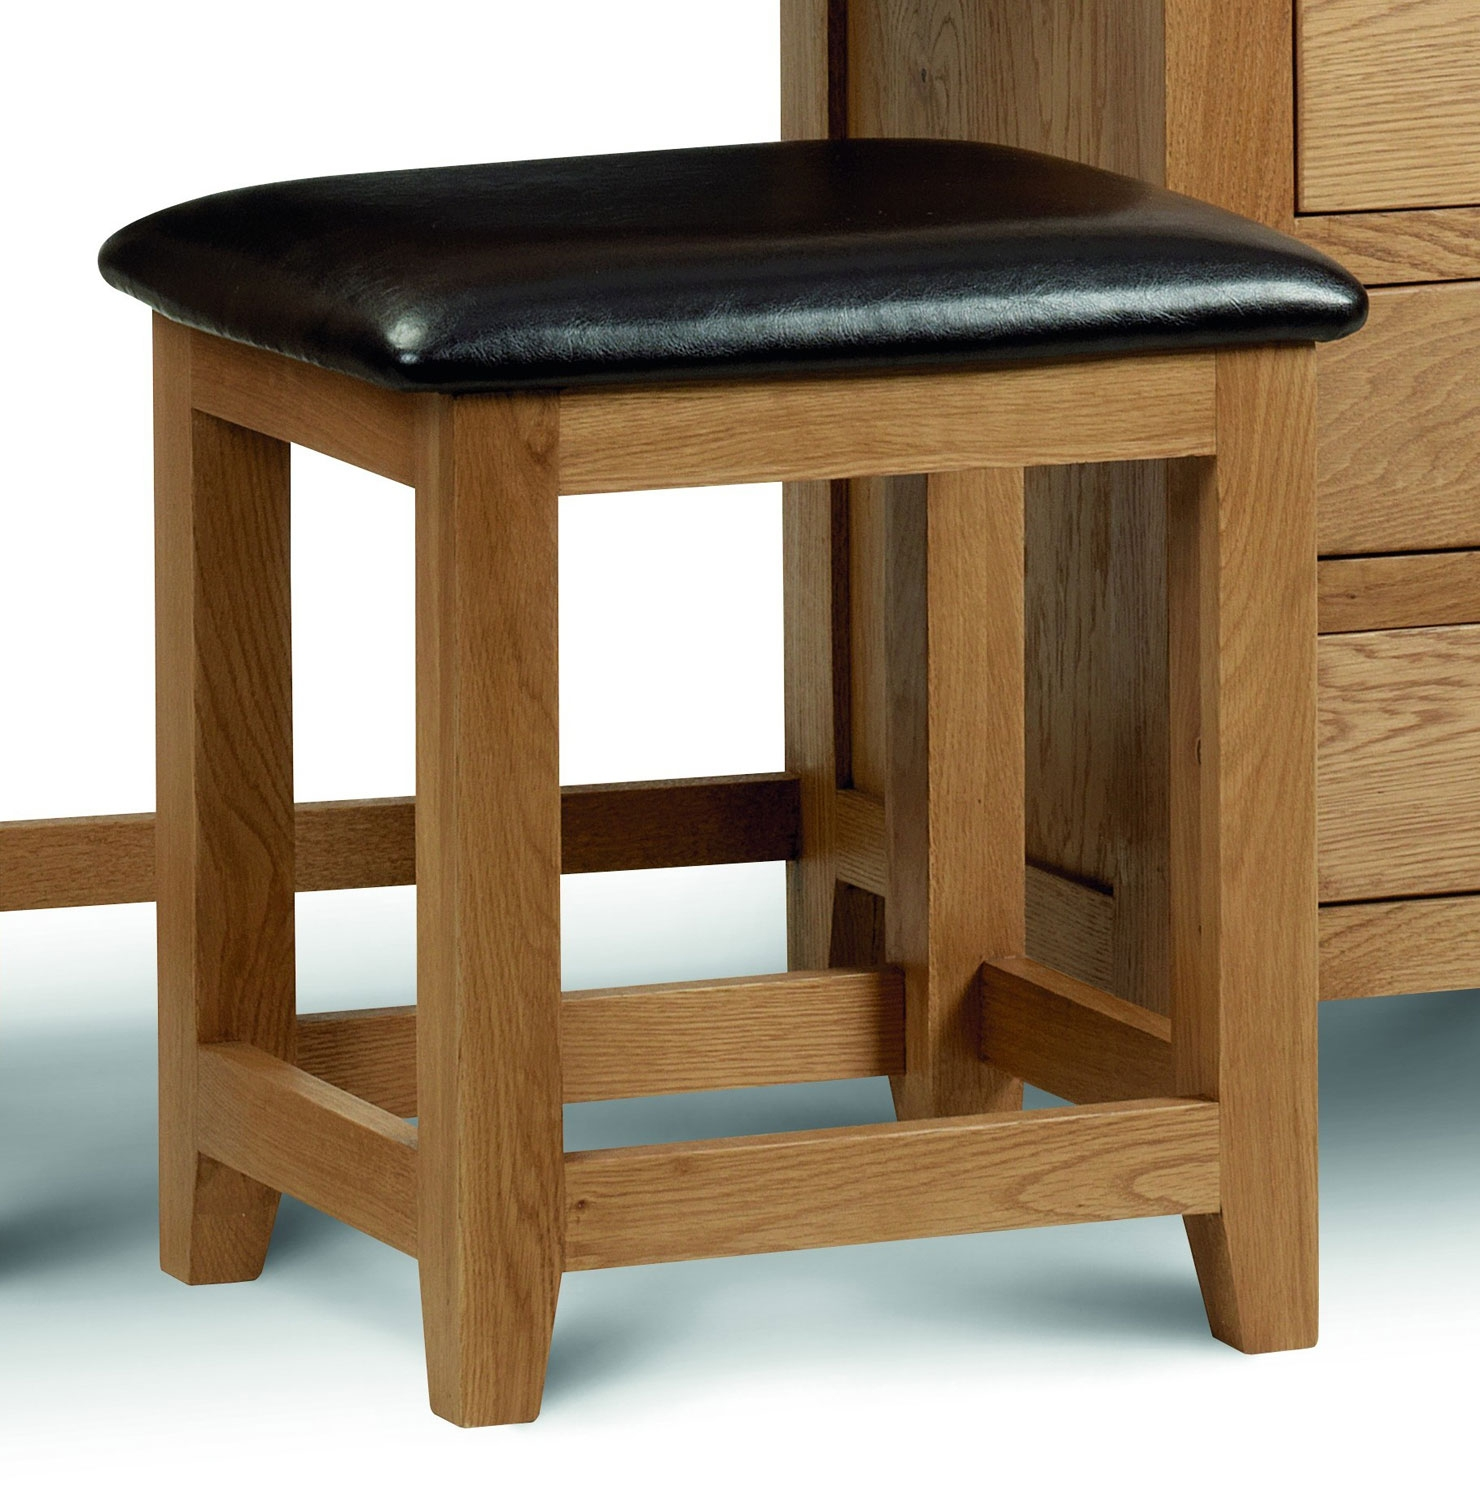 Marlborough oak dressing table stool Dressing tables and stools